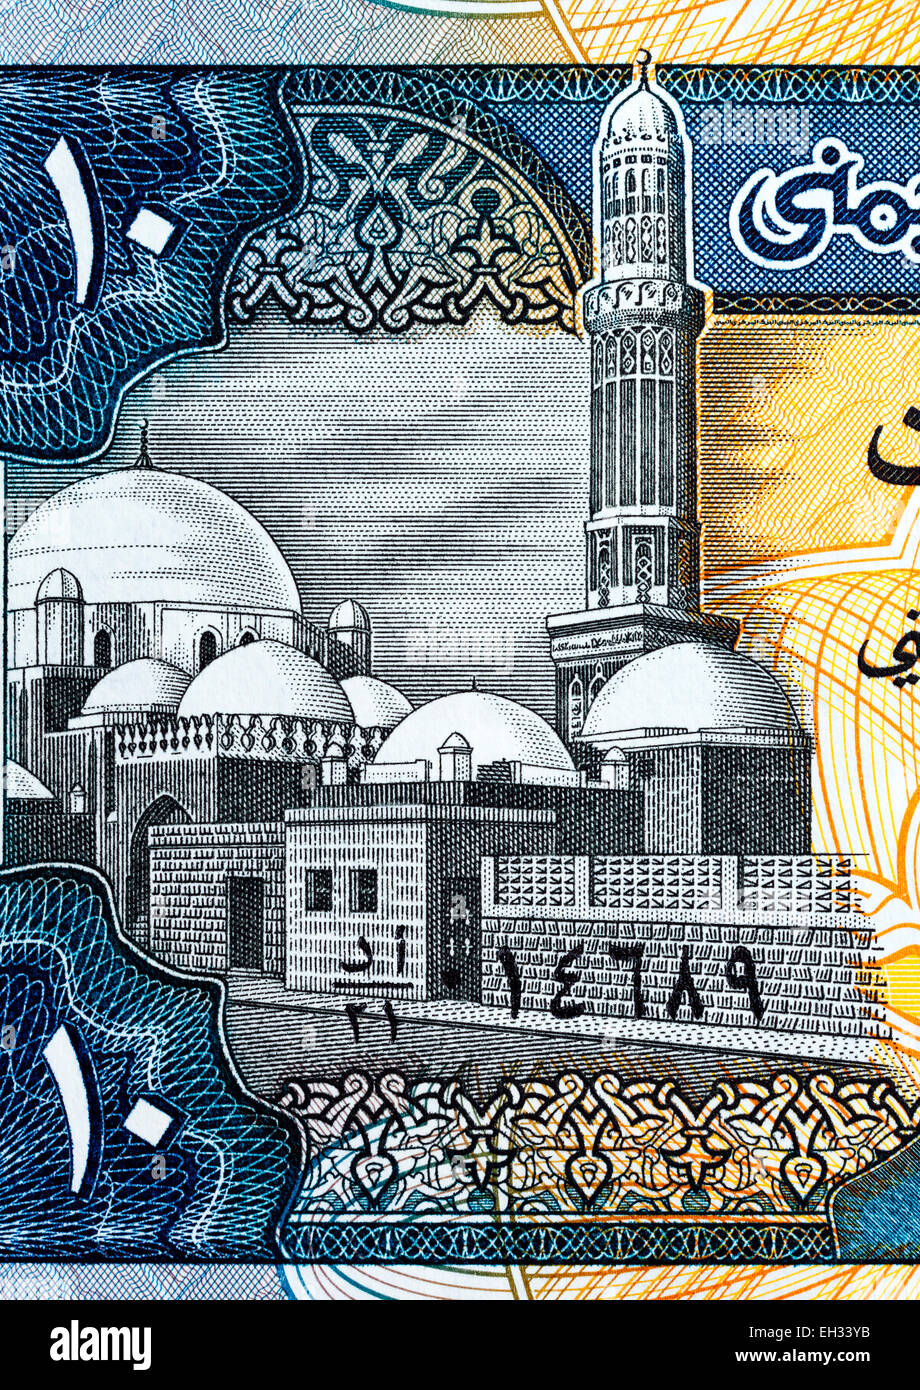 Qubbat Al-Bakiliyah Mosque in Sana'a from 10 rials banknote, Yemen, 1990 Stock Photo